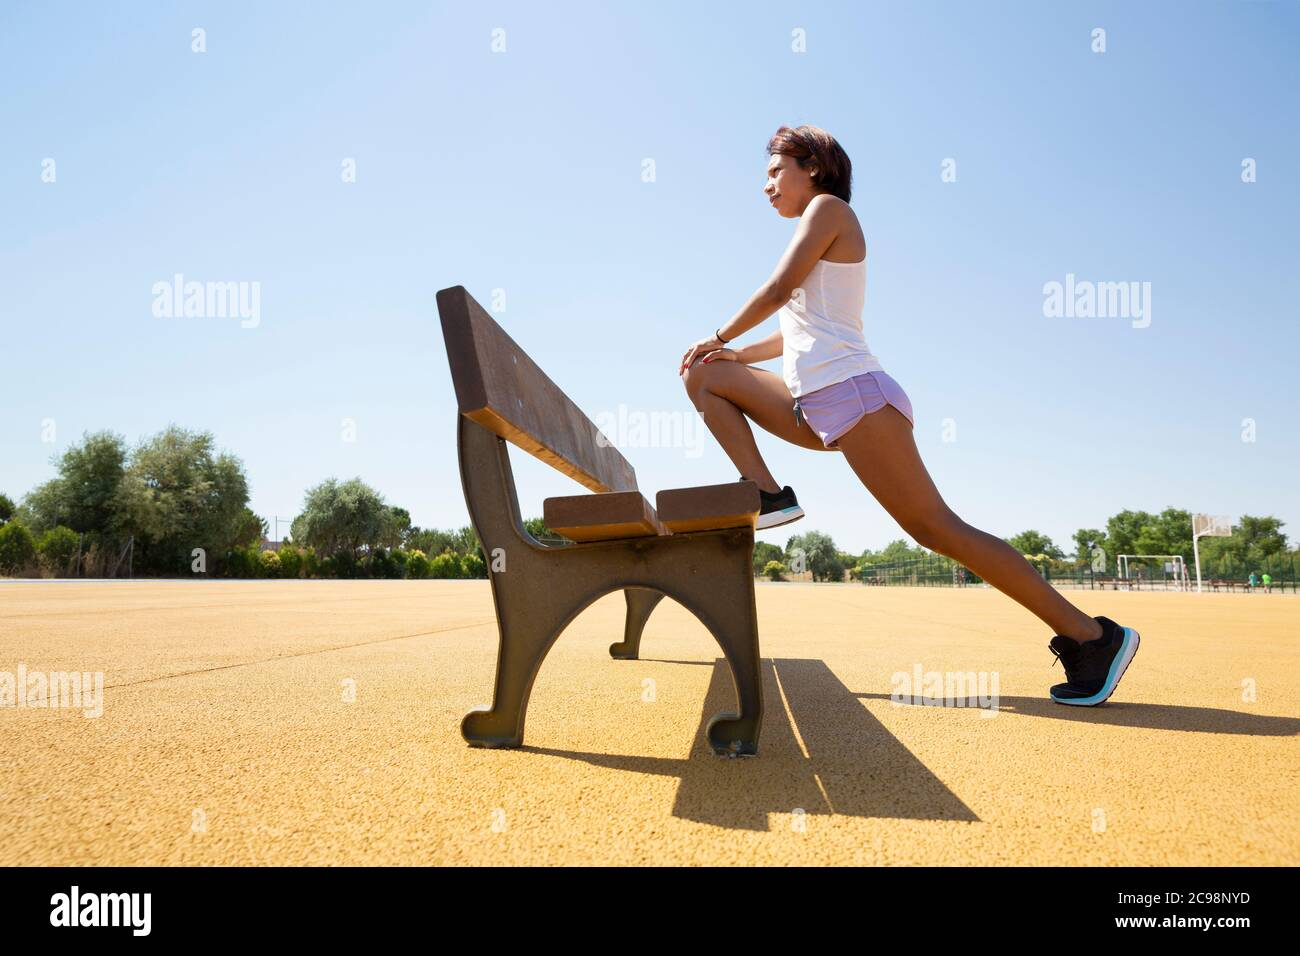 Young woman stretching her muscles on an outdoor bench before doing sport. Space for text. Stock Photo